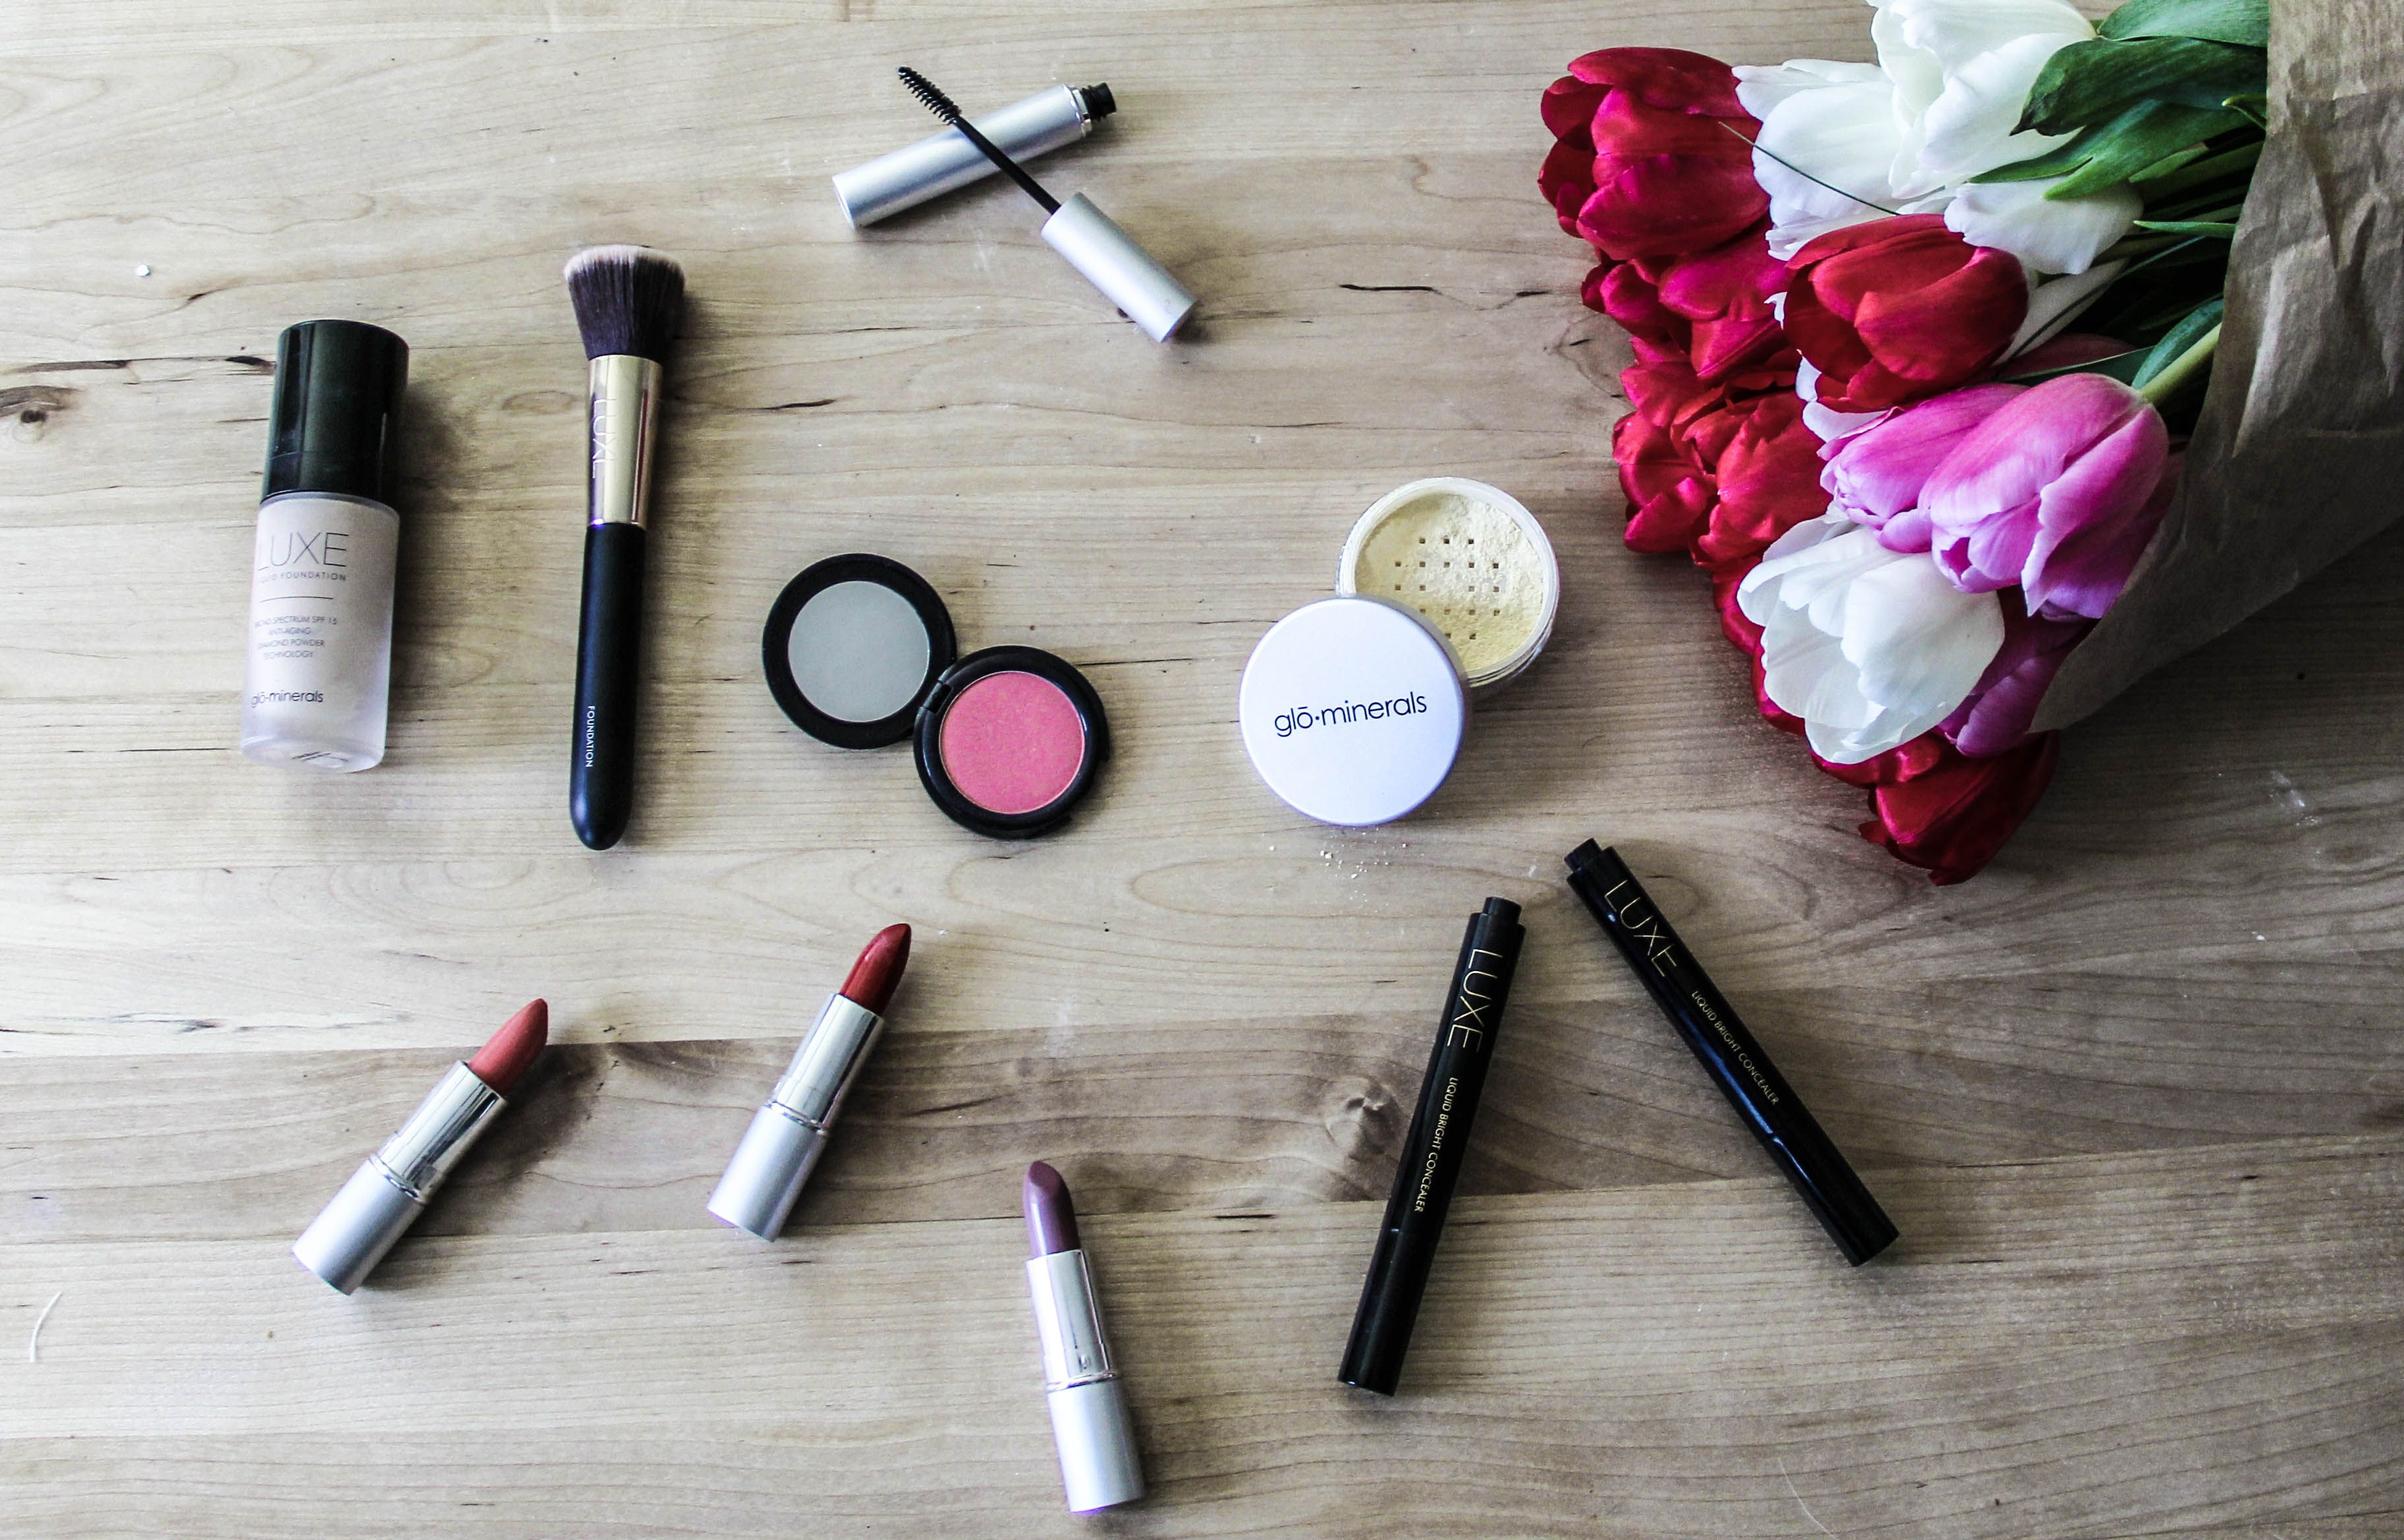 GloMinerals Review on the blog. Use the promo code